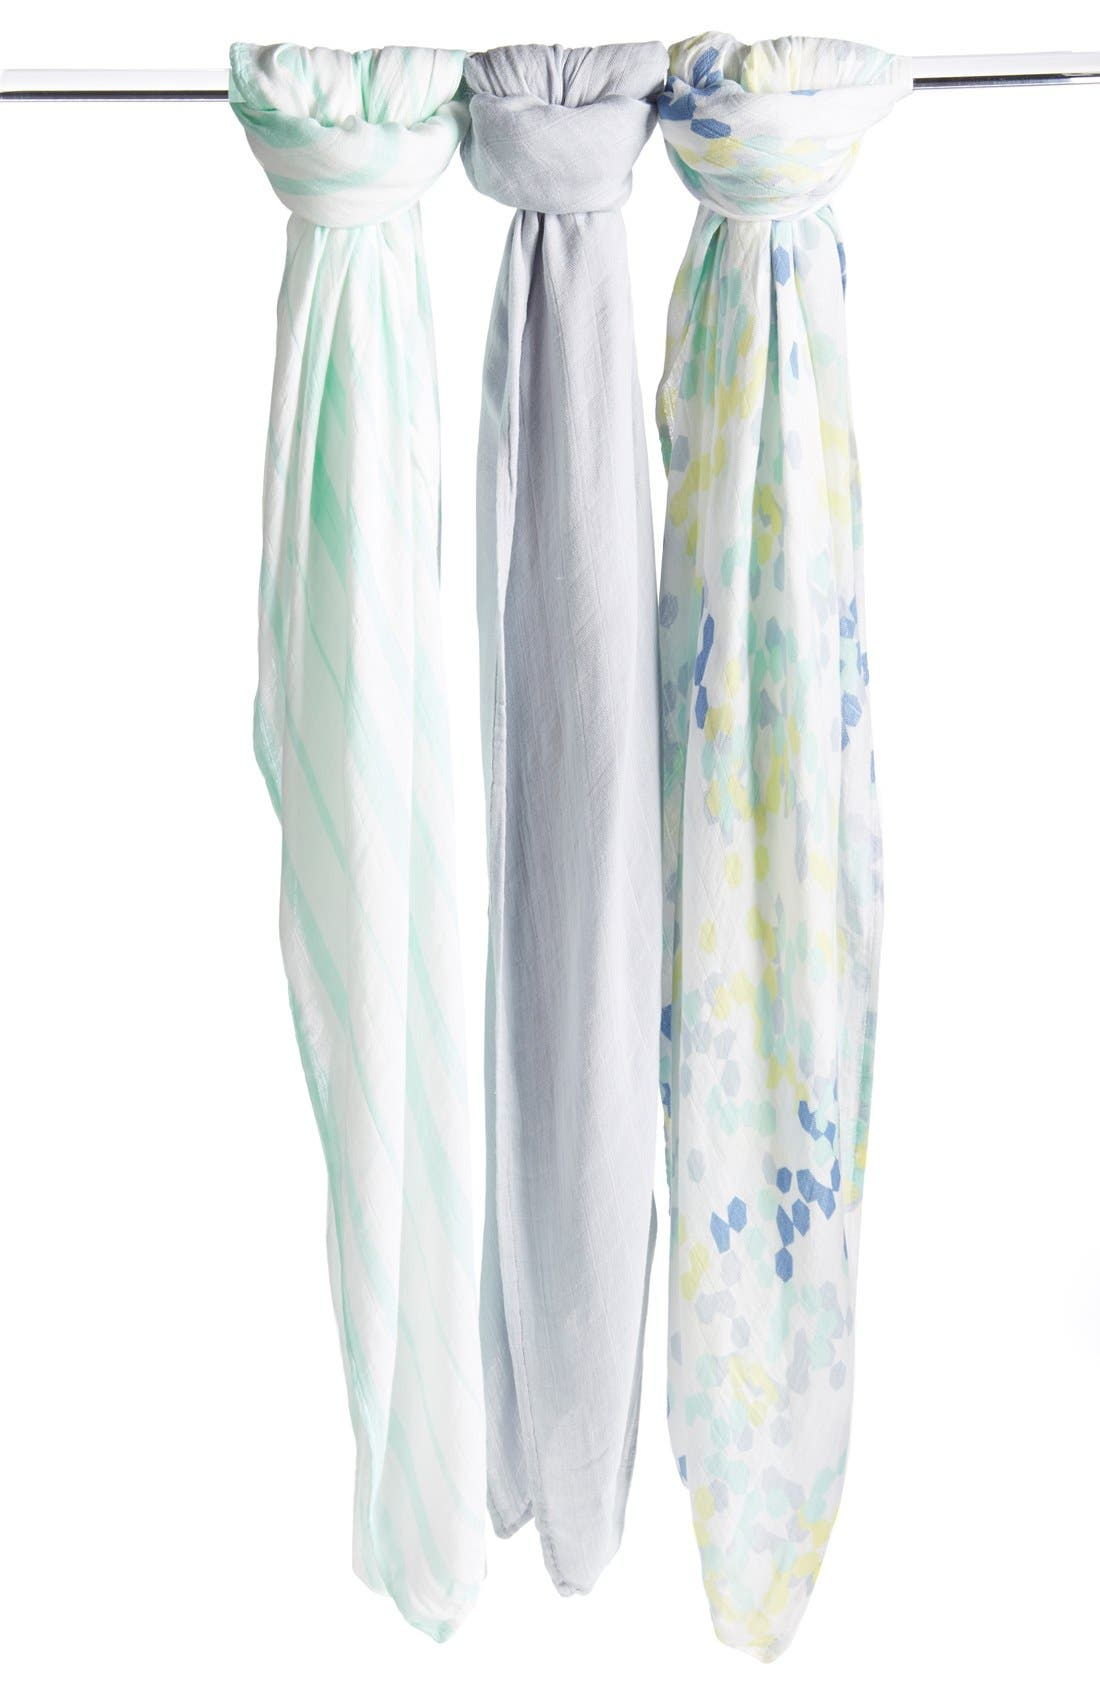 Alternate Image 1 Selected - aden + anais Print Swaddling Cloths (3-Pack) (Nordstrom Exclusive)